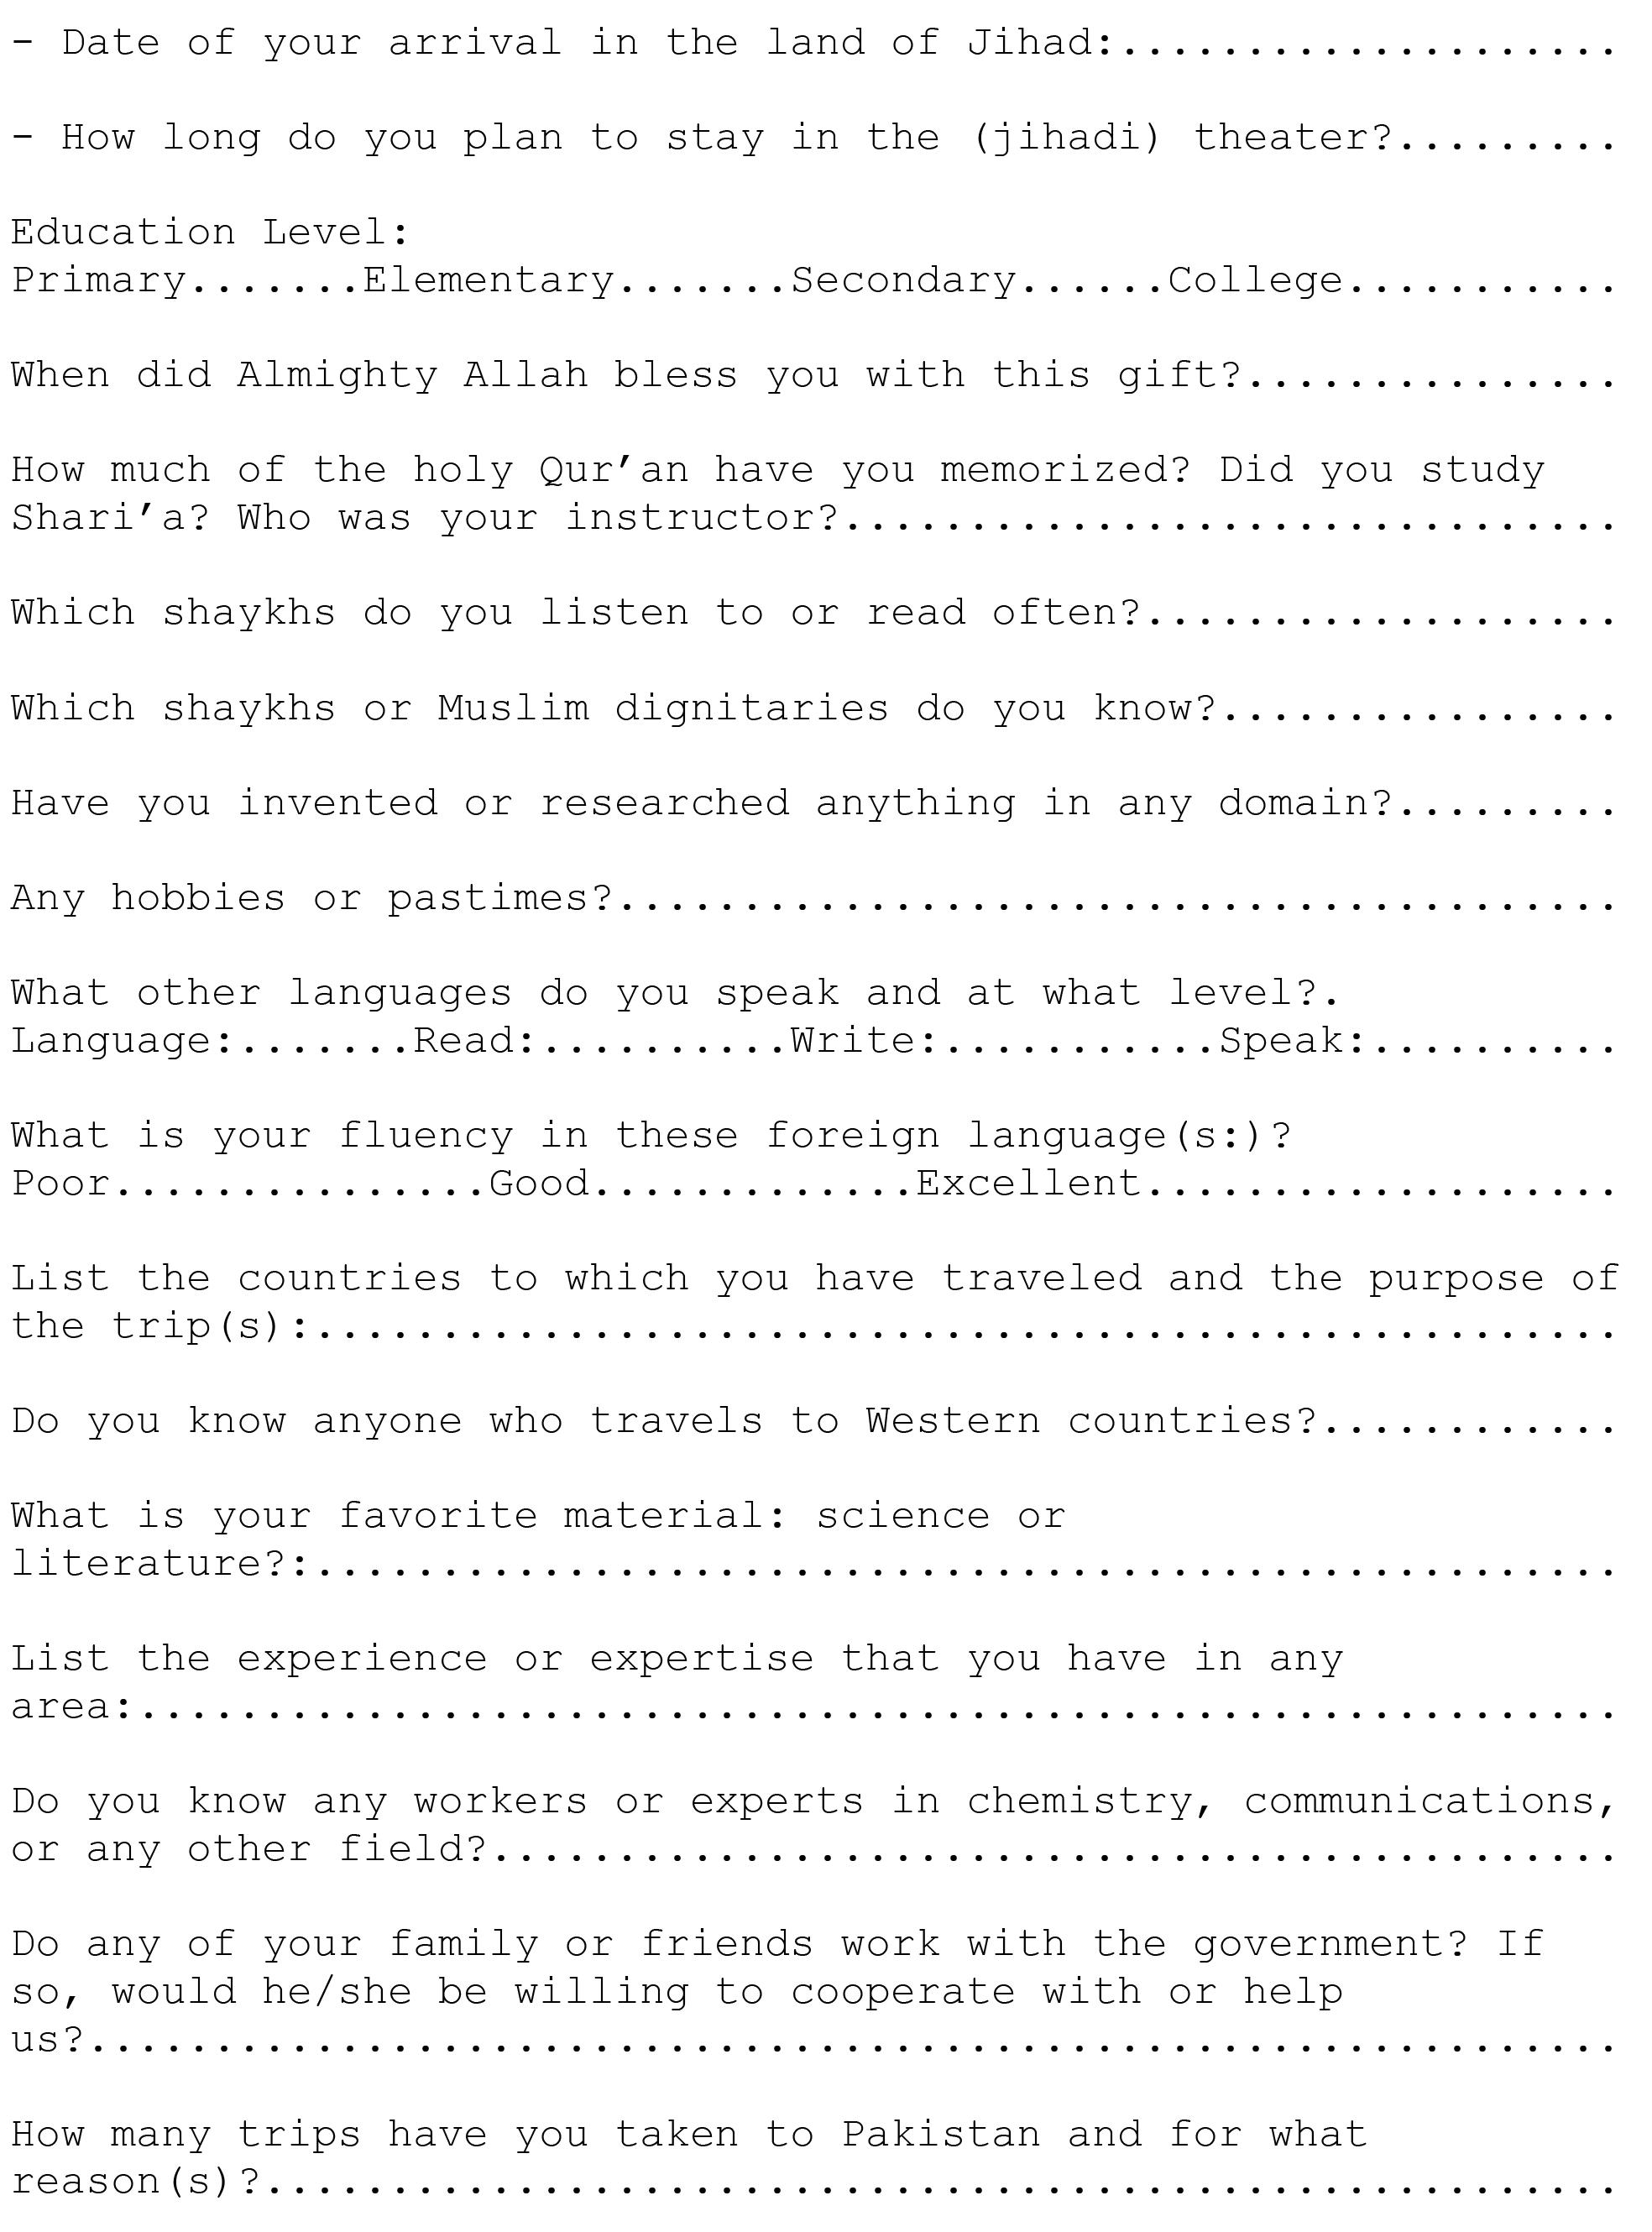 Ever Wondered What An Al Qaeda Job Application Form Looks Like? instructions to applicants 2